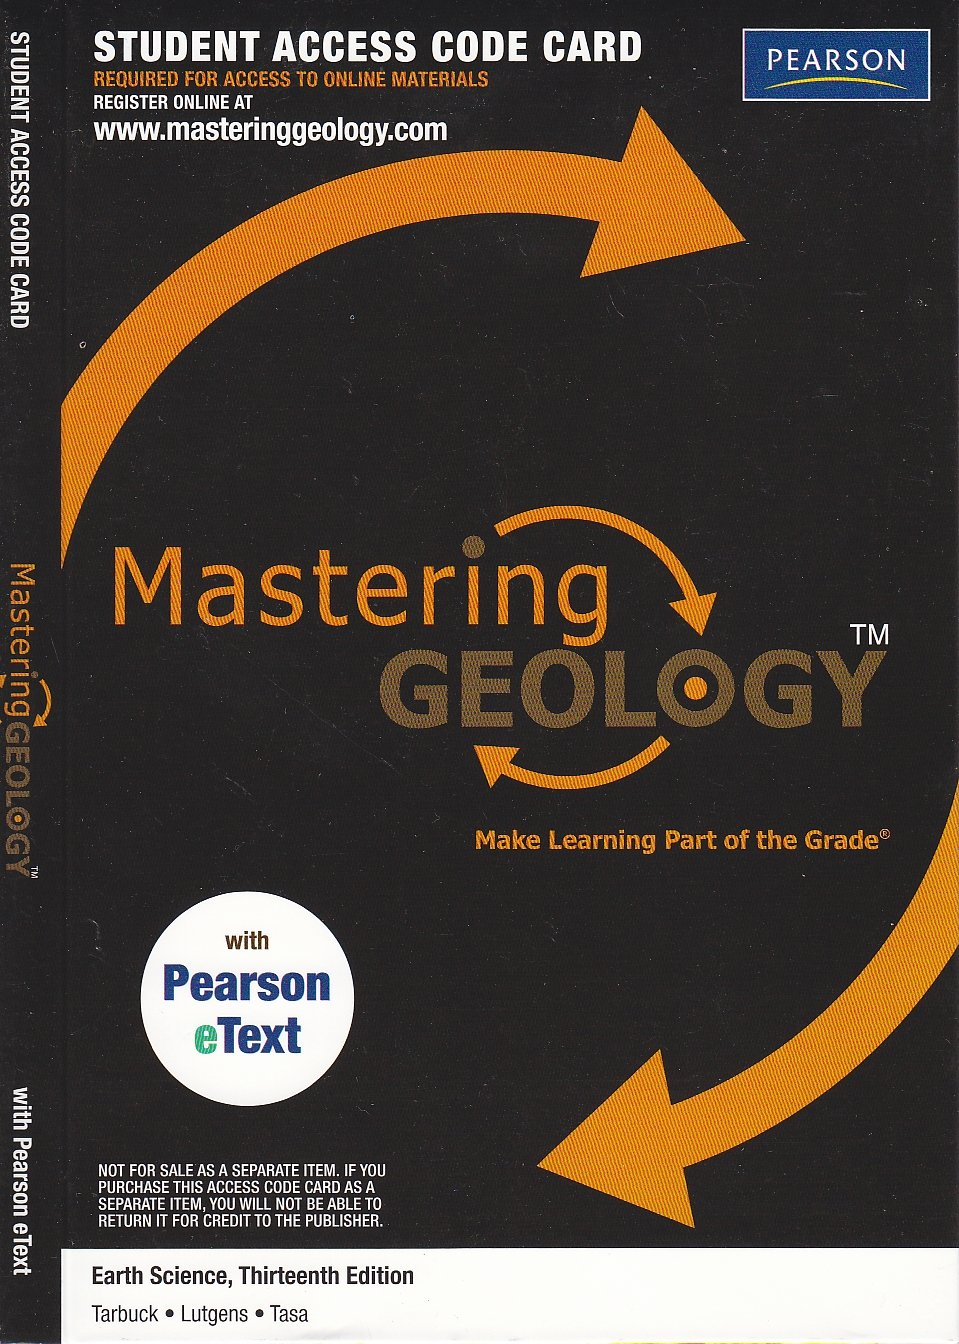 Student access code mastering geology earth science 13th student access code mastering geology earth science 13th 9780321727442 pearson amazon books fandeluxe Image collections